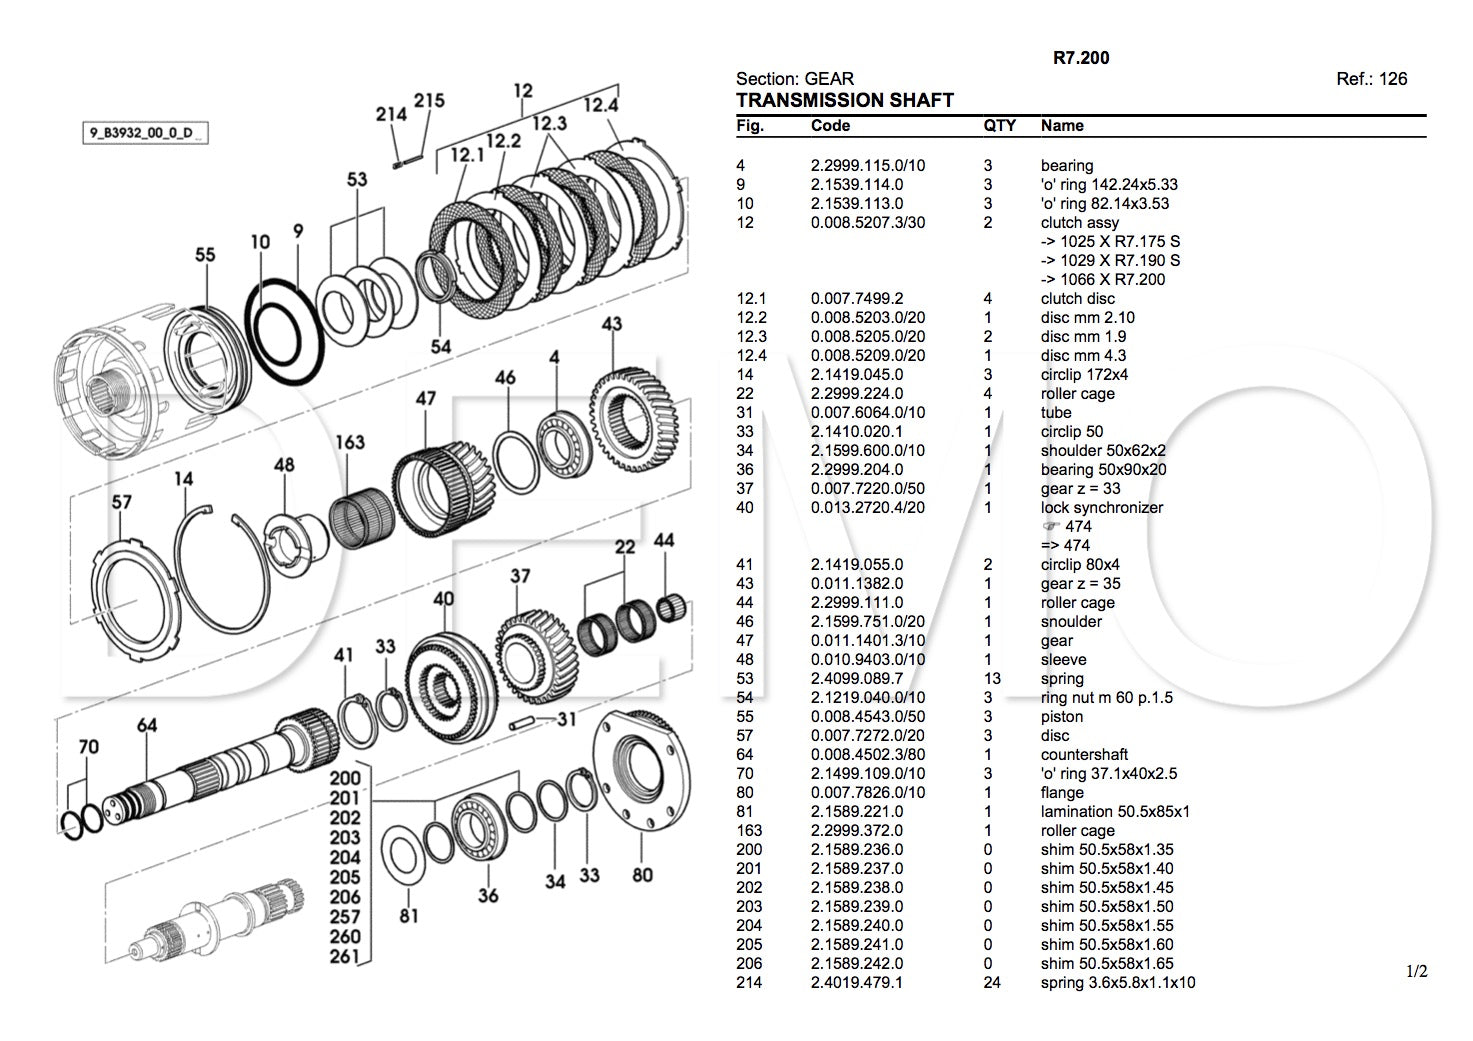 Lamborghini 1060 Premium Parts Catalogue, Parts Catalog